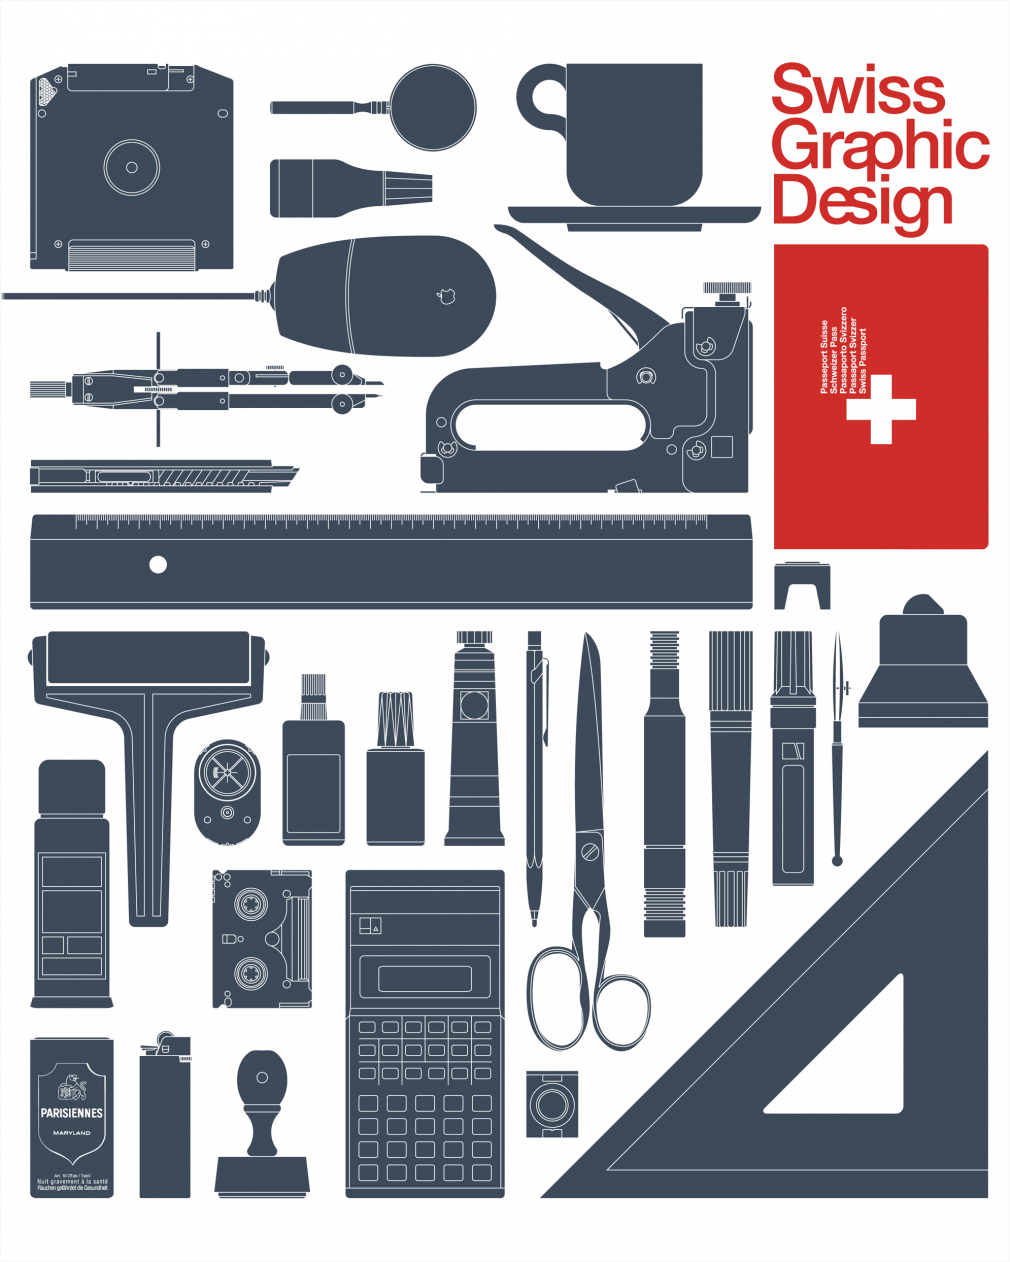 Swiss Graphic Design book cover